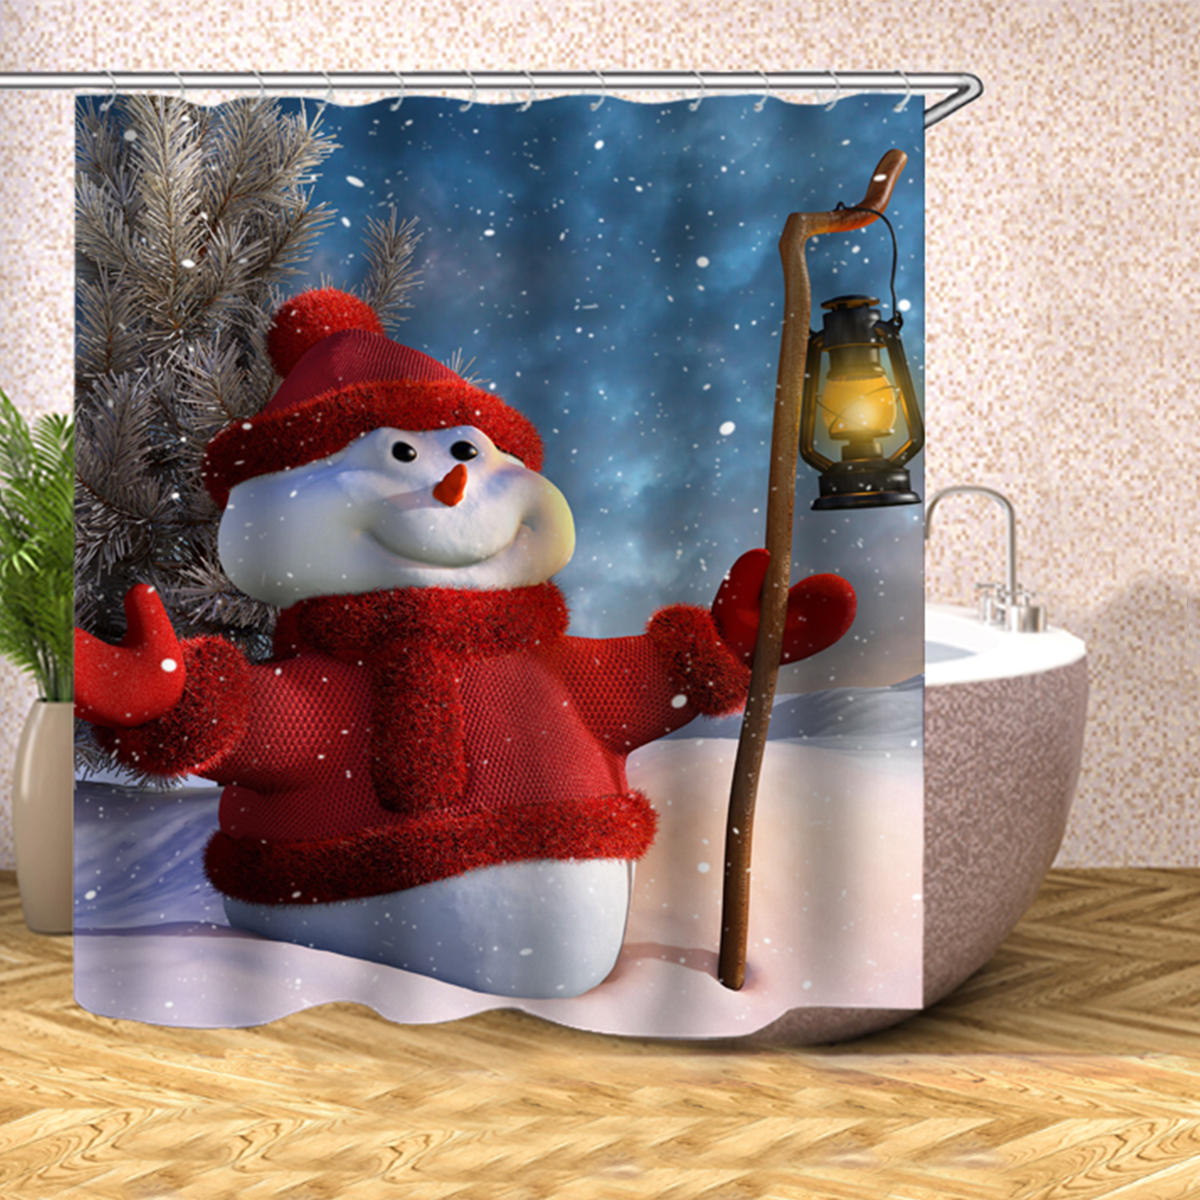 Christmas Decoration Christmas Snowman Shower Curtain Washable Eco Friendly Waterproof Curtain With Plastic Hook